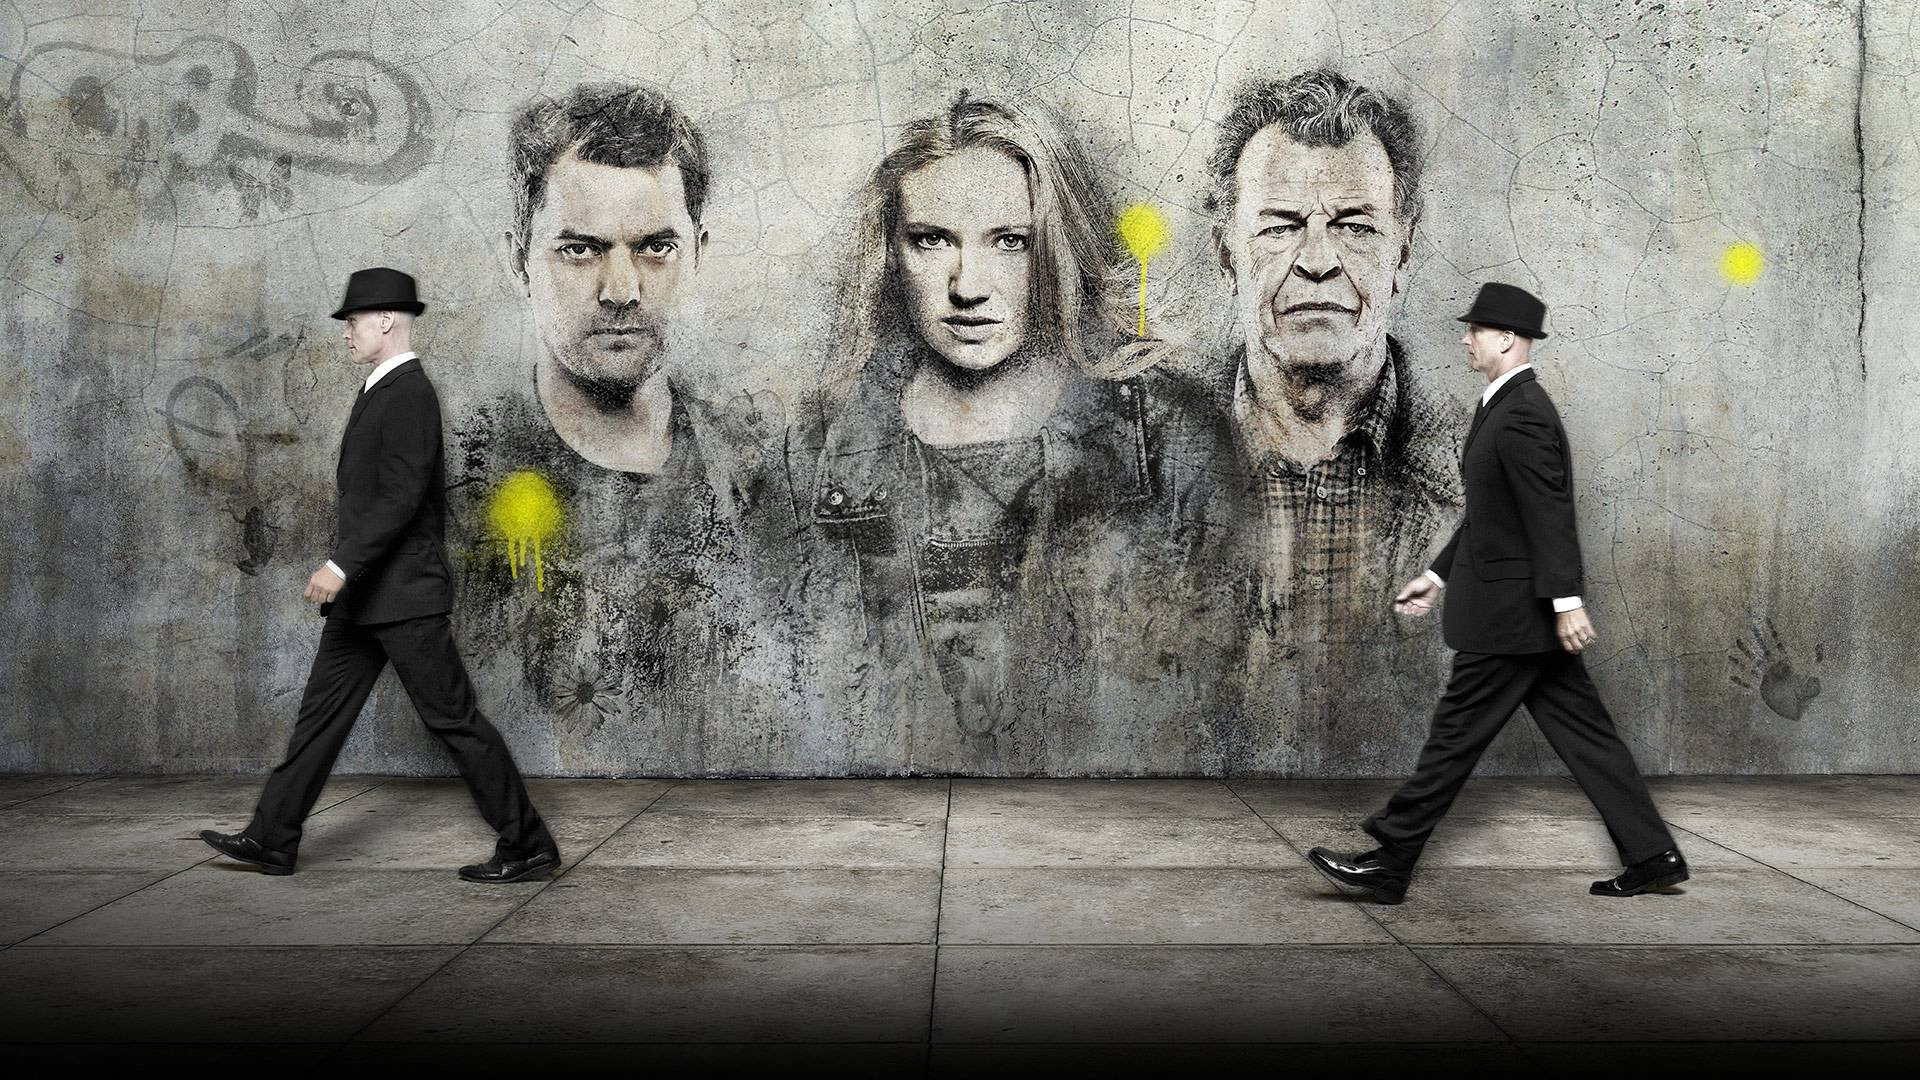 General 1920x1080 Fringe (TV series) graffiti Promos TV Series Anna Torv Olivia Dunham Joshua Jackson Peter Bishop John Noble Dr. Walter Bishop Promotional